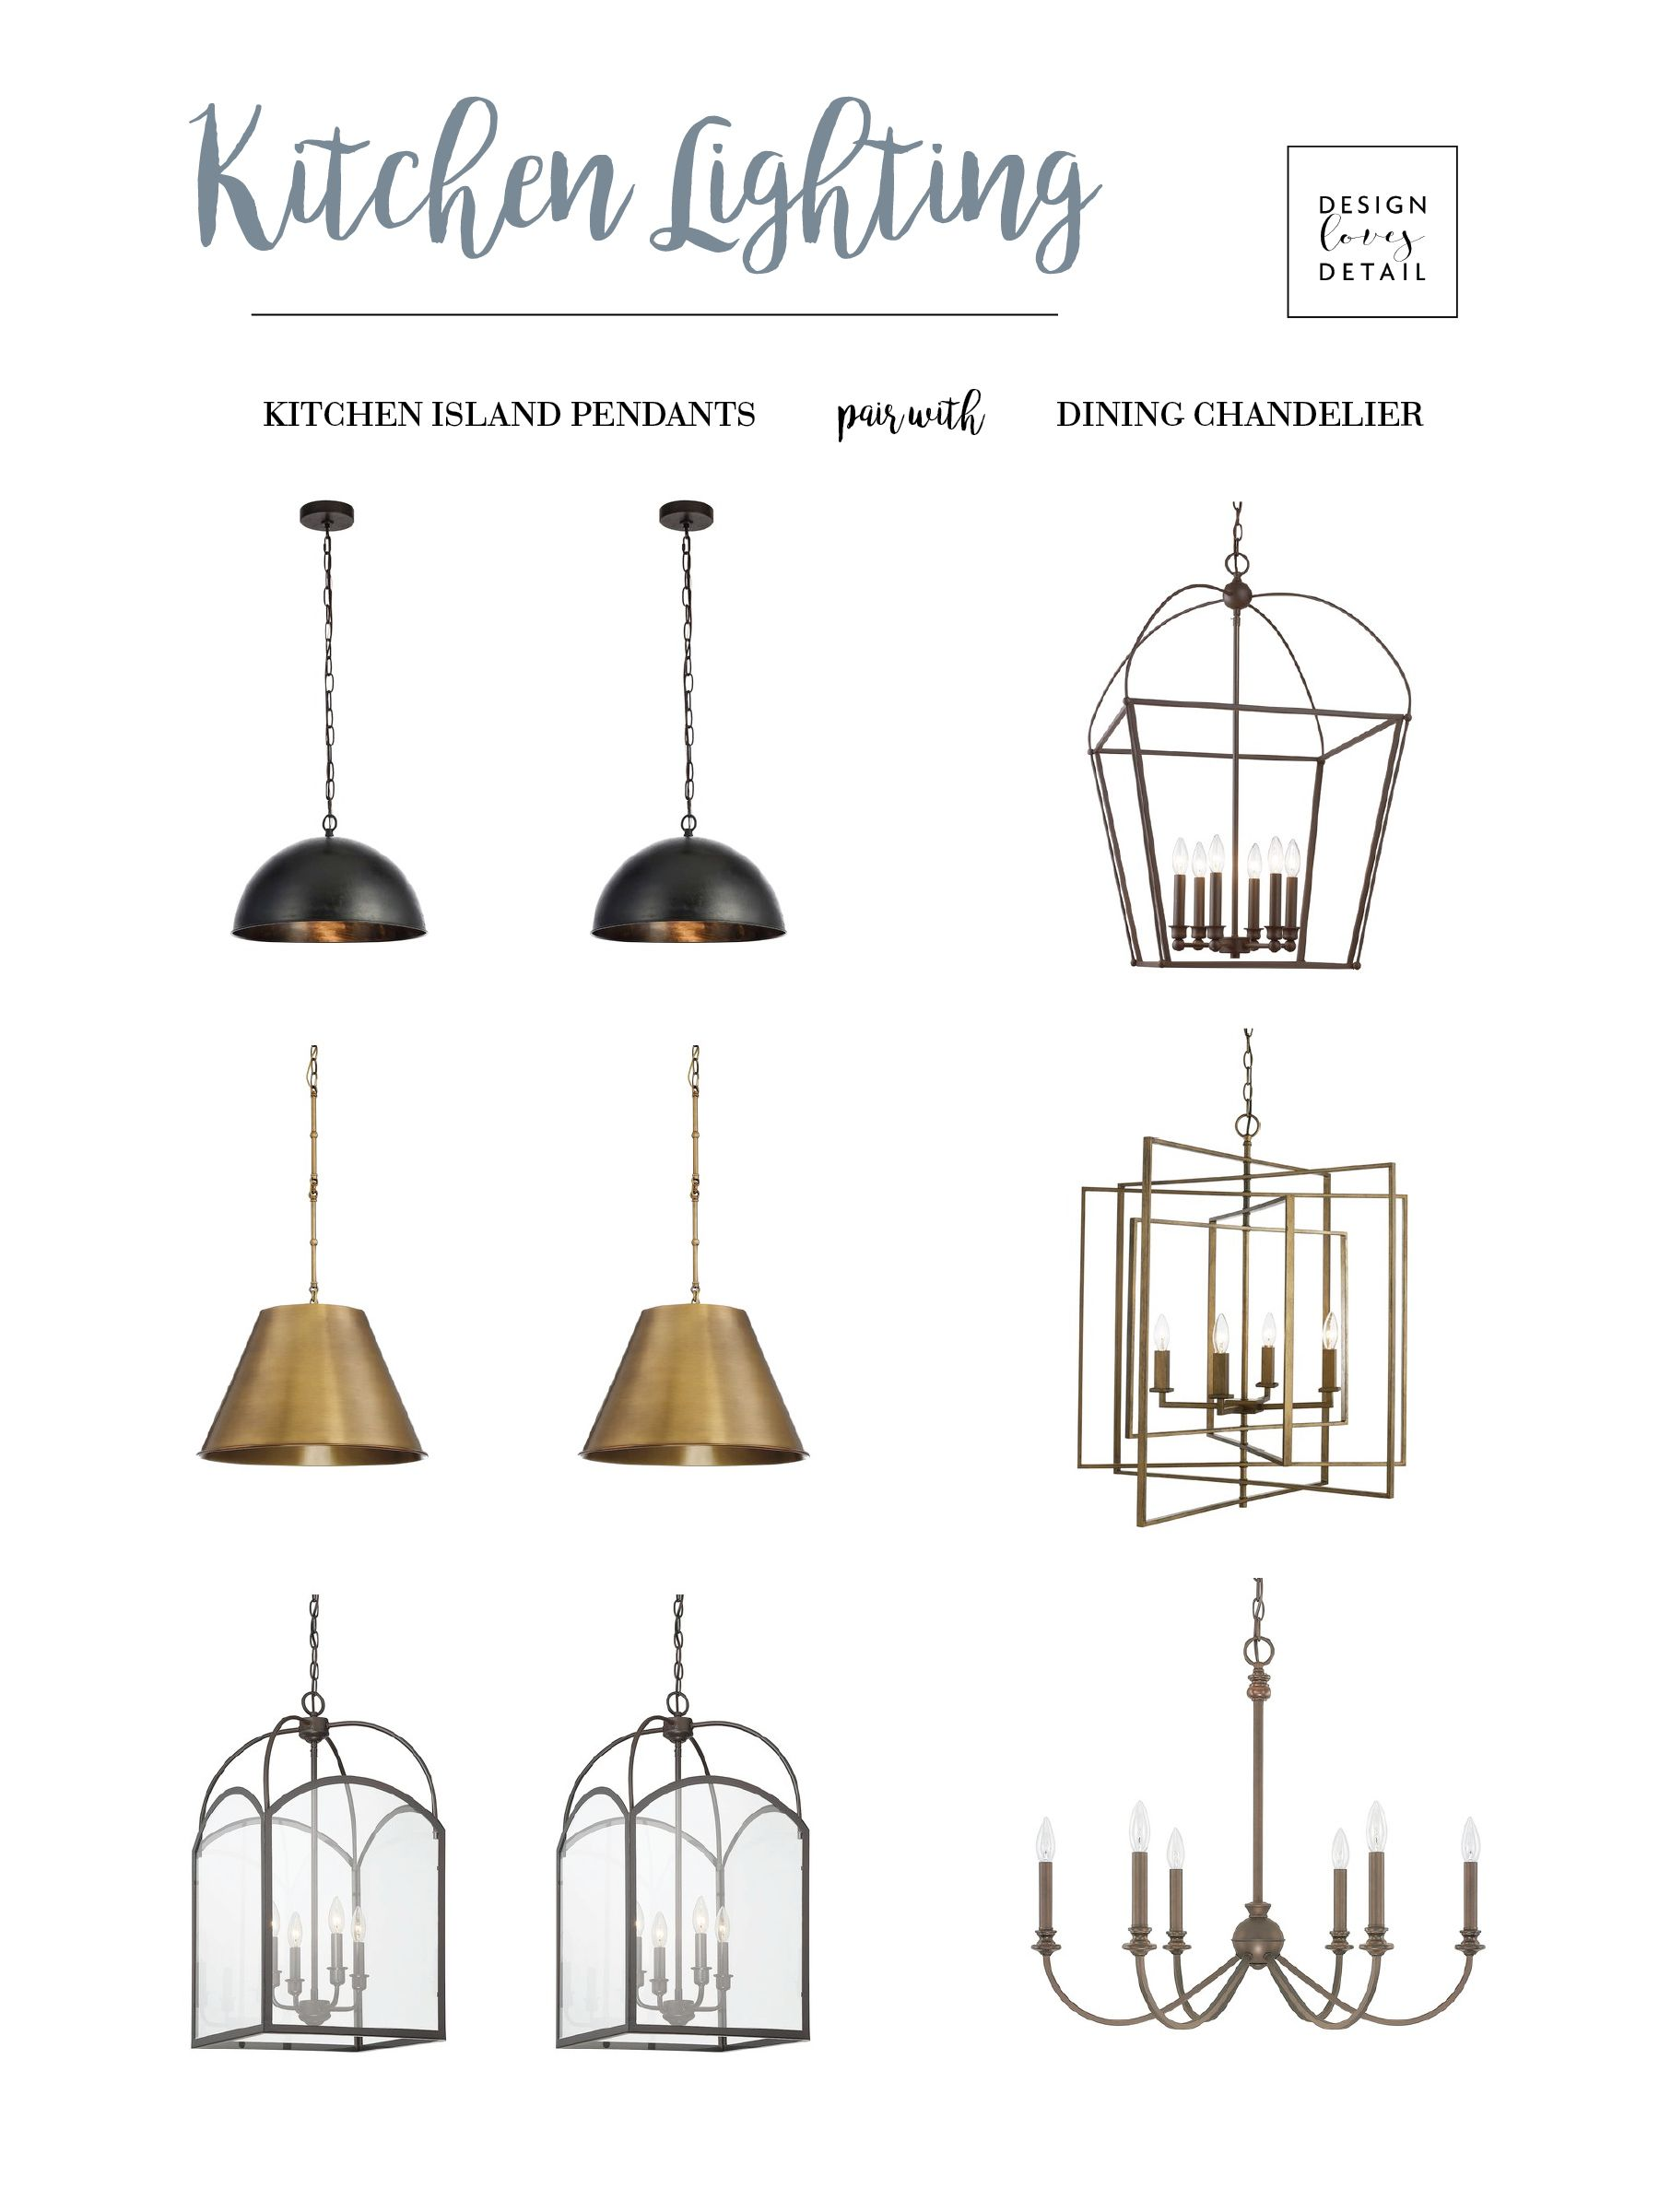 20 Unique Kitchen Lighting Ideas For Your Wonderful Kitchen Antique Kitchen Unique Kitchen Kitchen Lighting